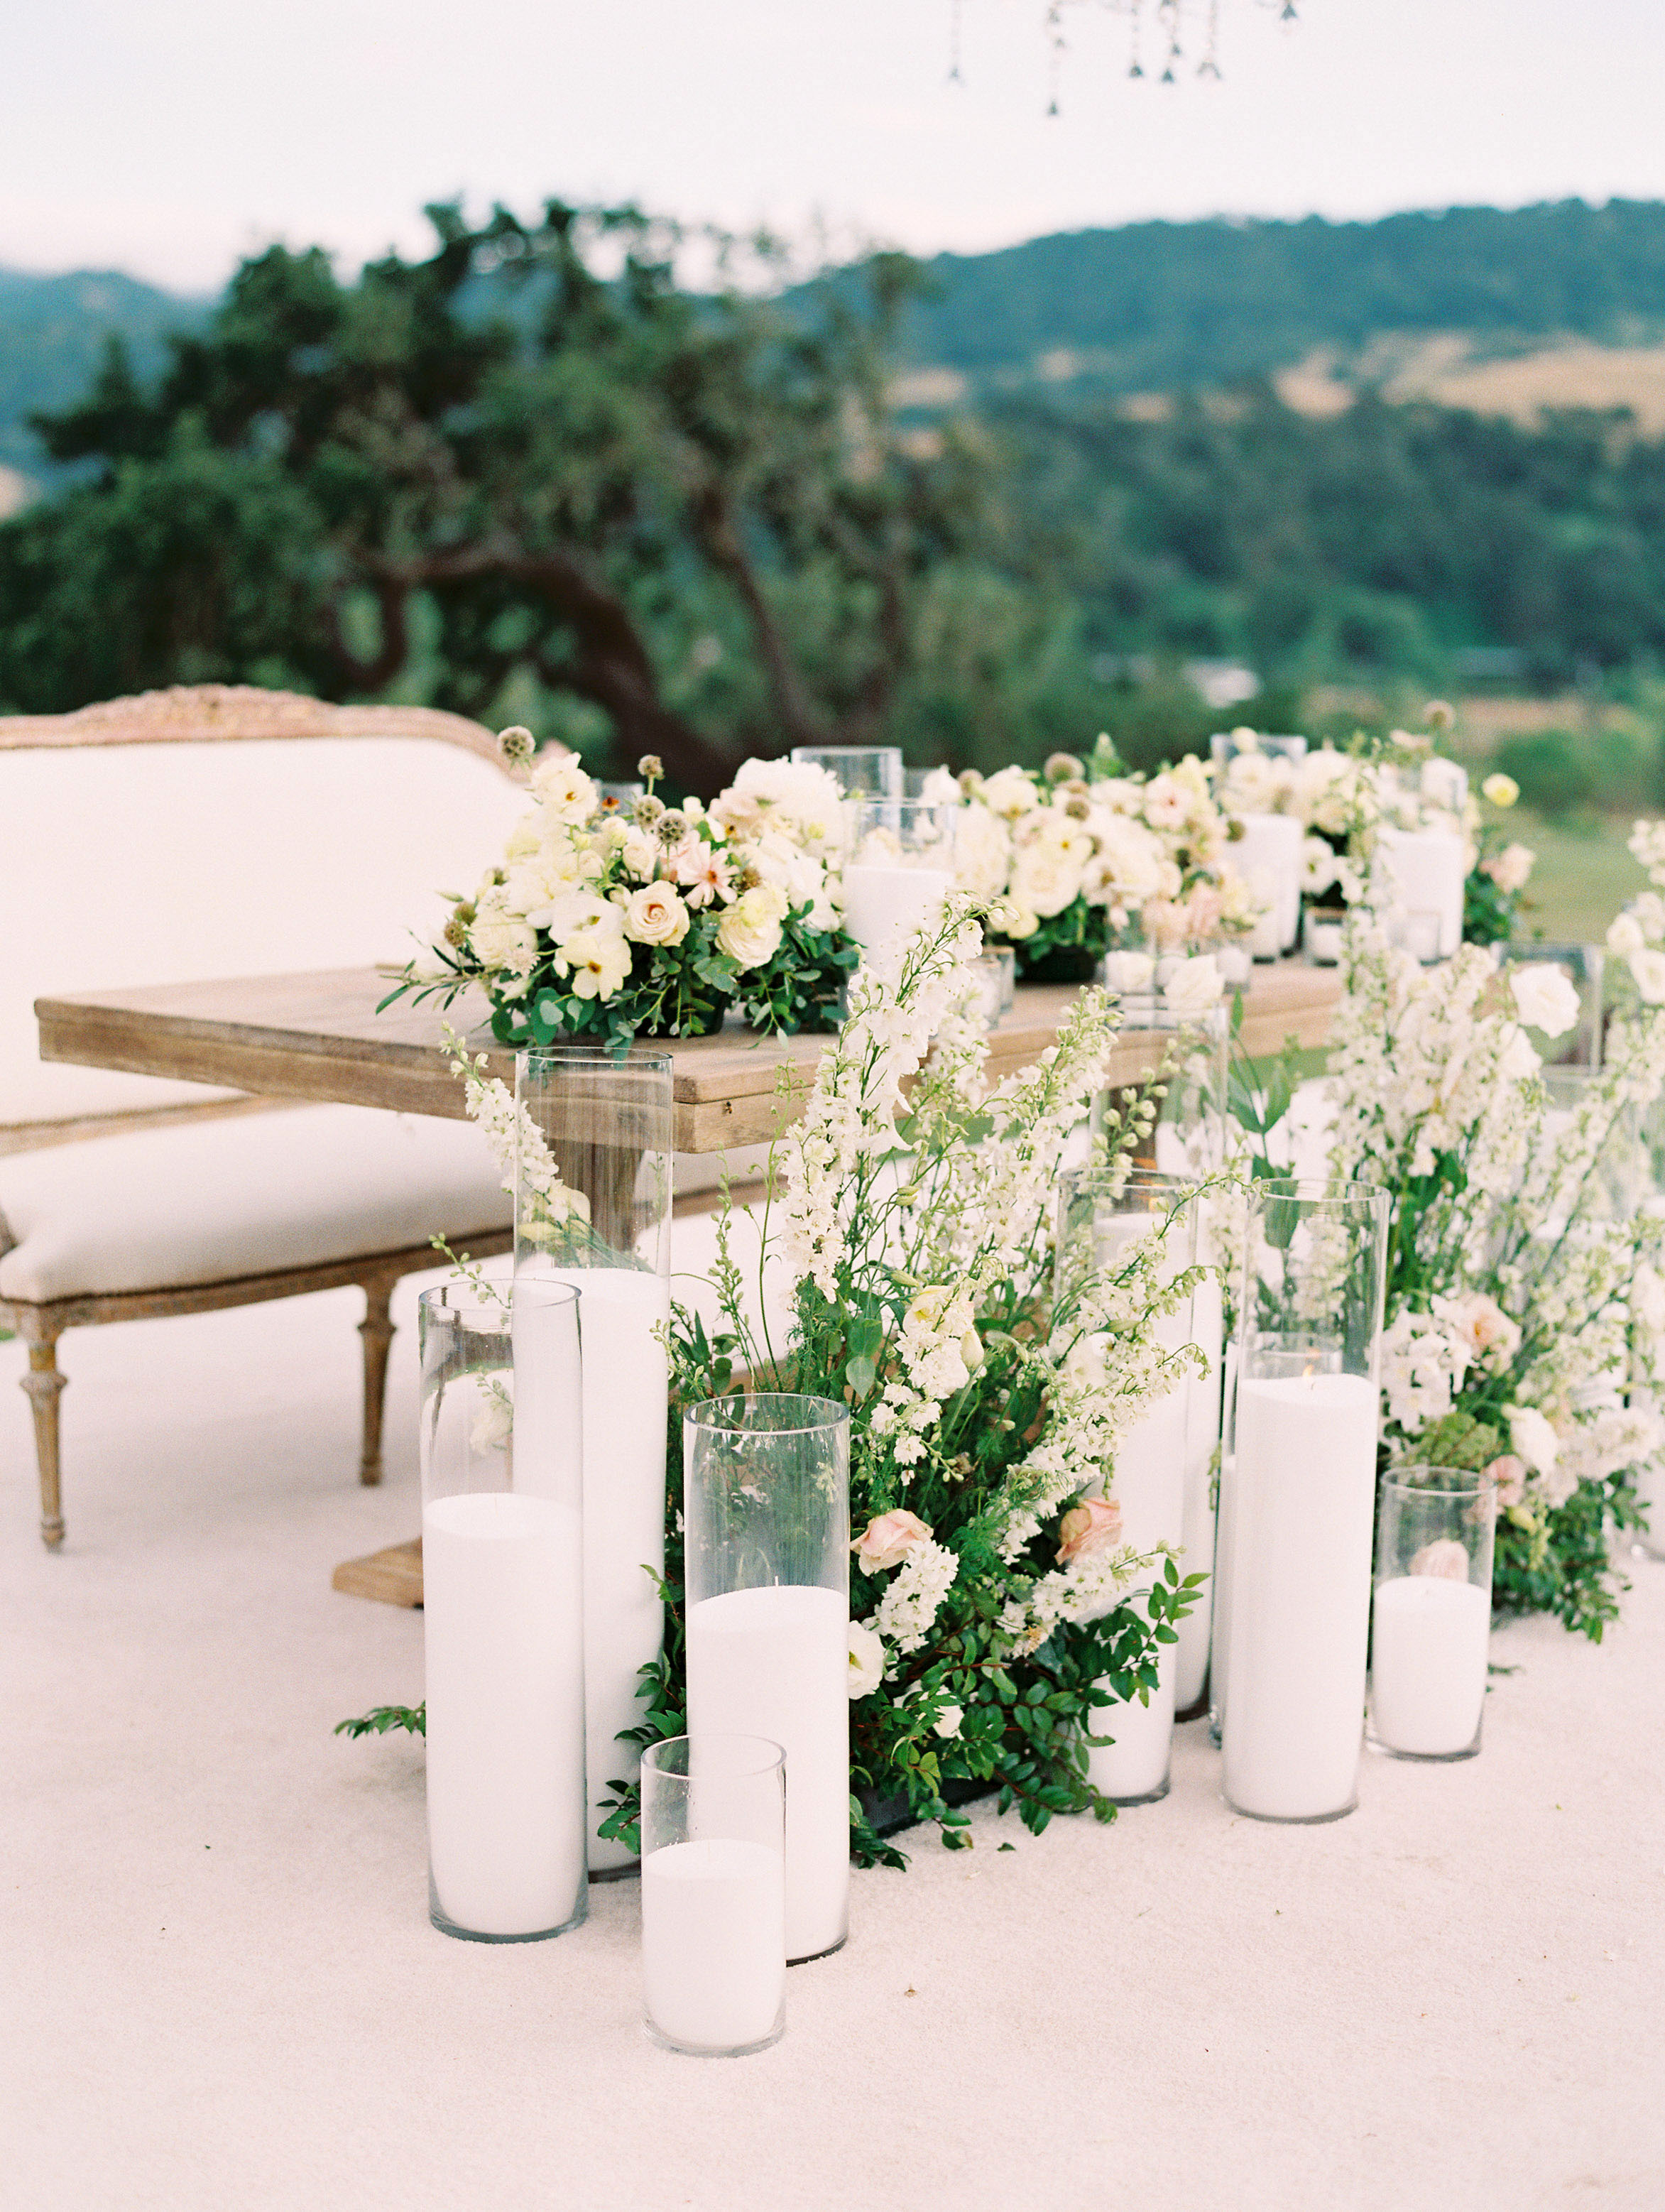 kati erik wedding reception decorations with candles flowers and seating